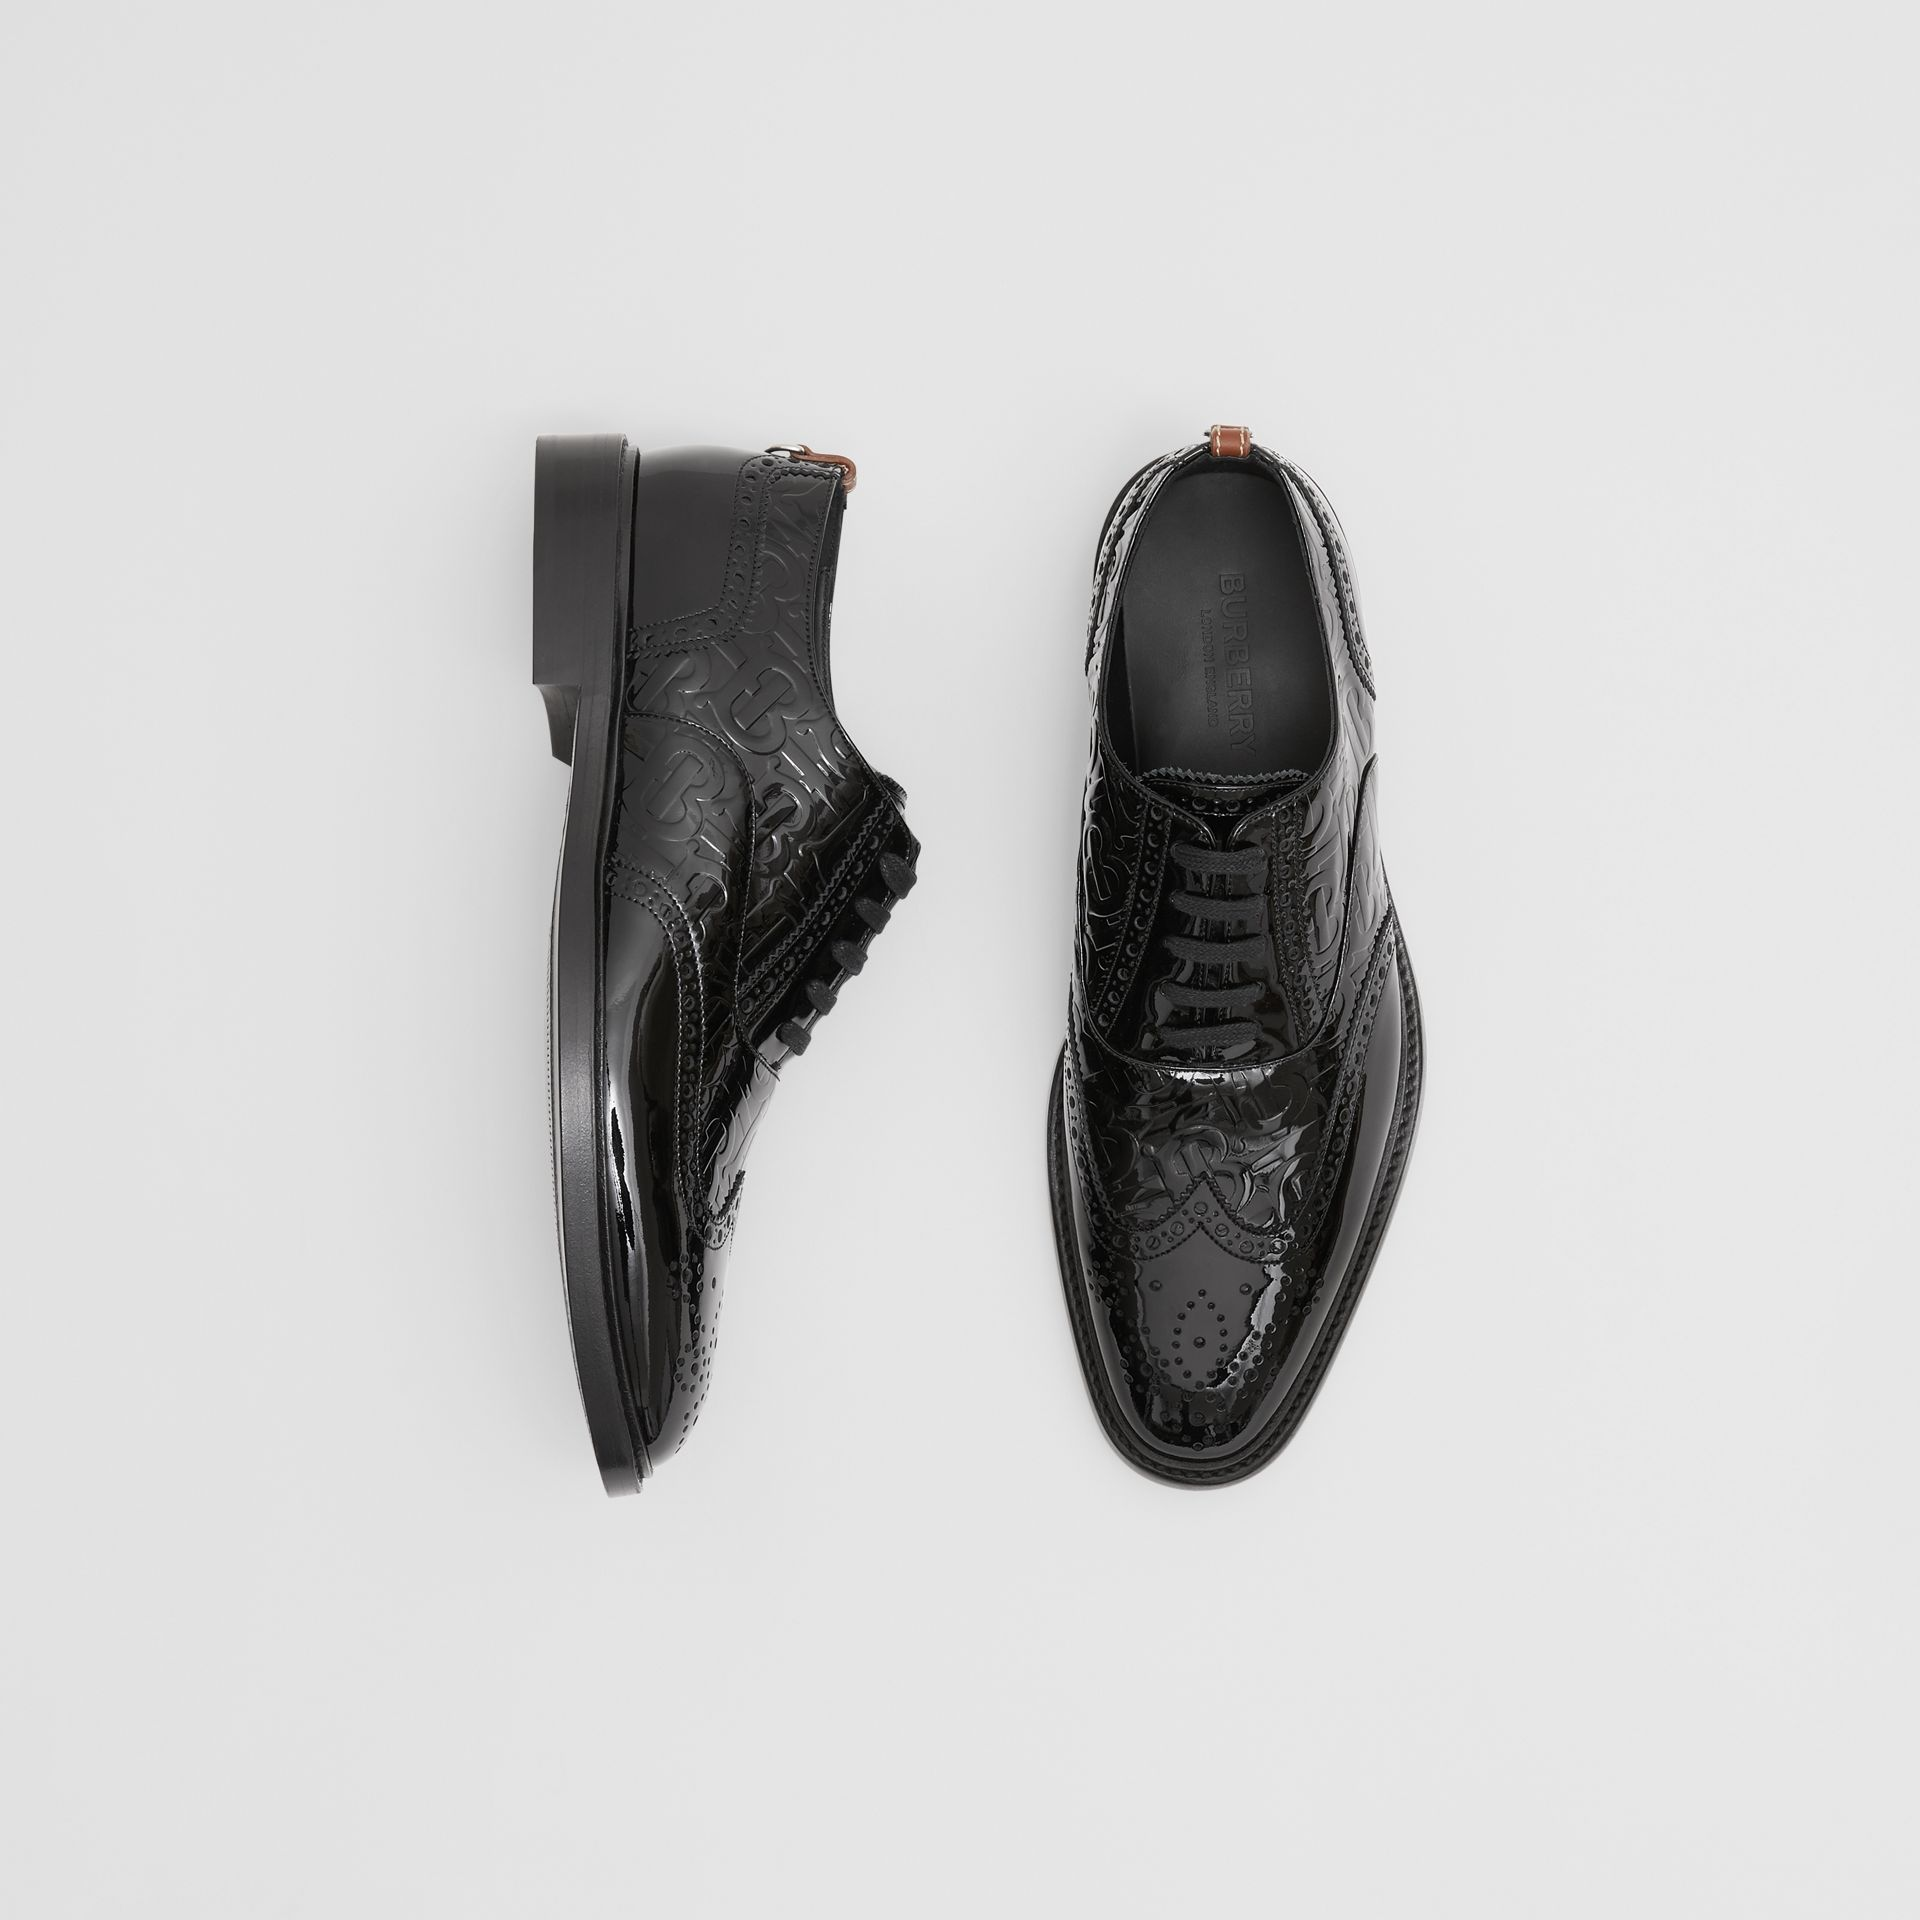 D-ring Detail Monogram Patent Leather Brogues in Black - Men | Burberry United Kingdom - gallery image 0